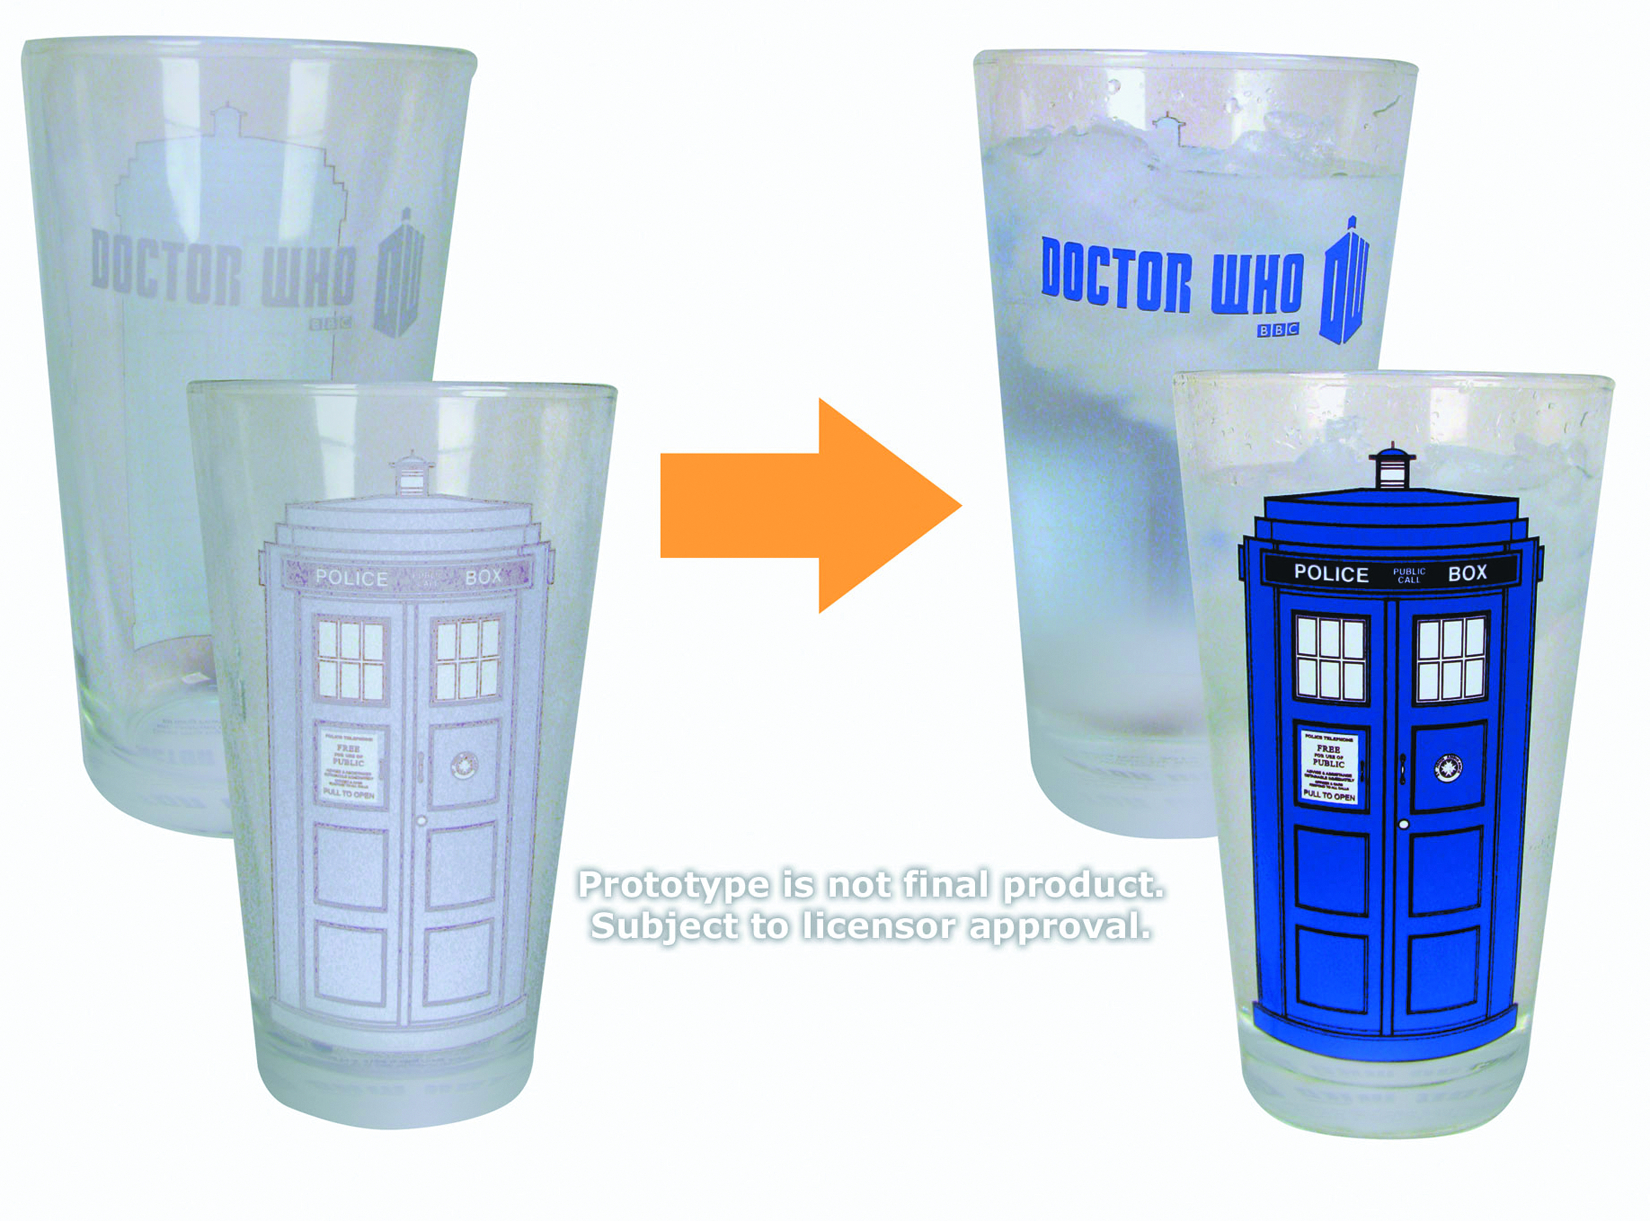 DOCTOR WHO COLOR-CHANGING TARDIS 16OZ GLASS 2PK